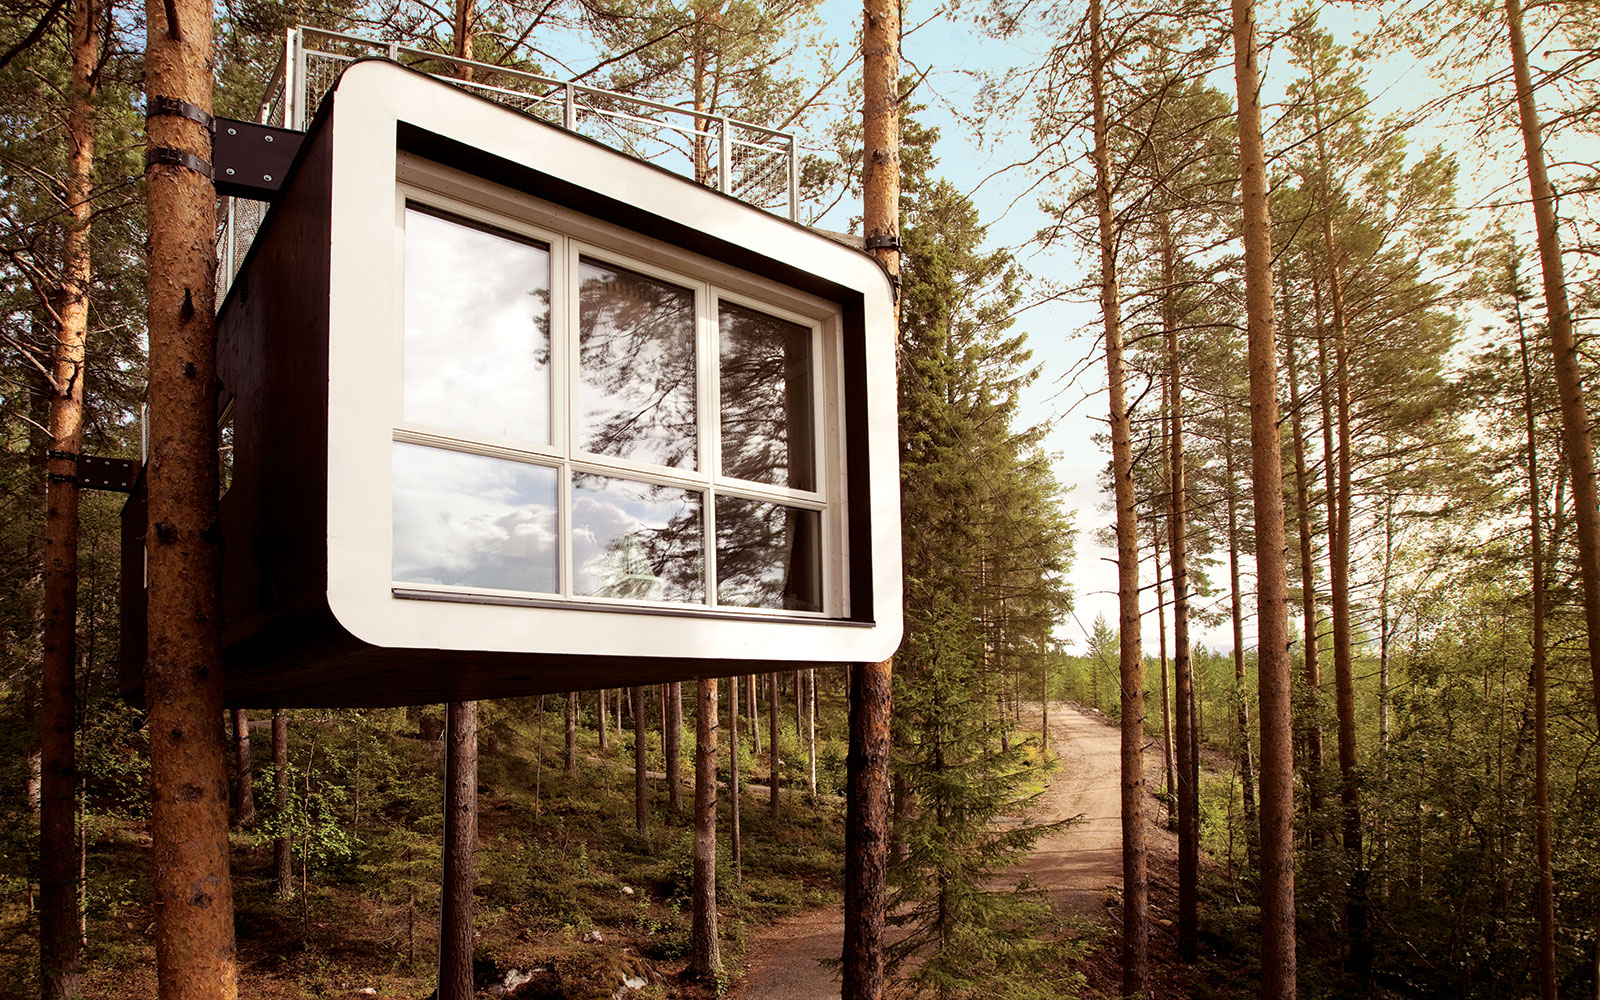 unique Treehotel in Harads, Sweden